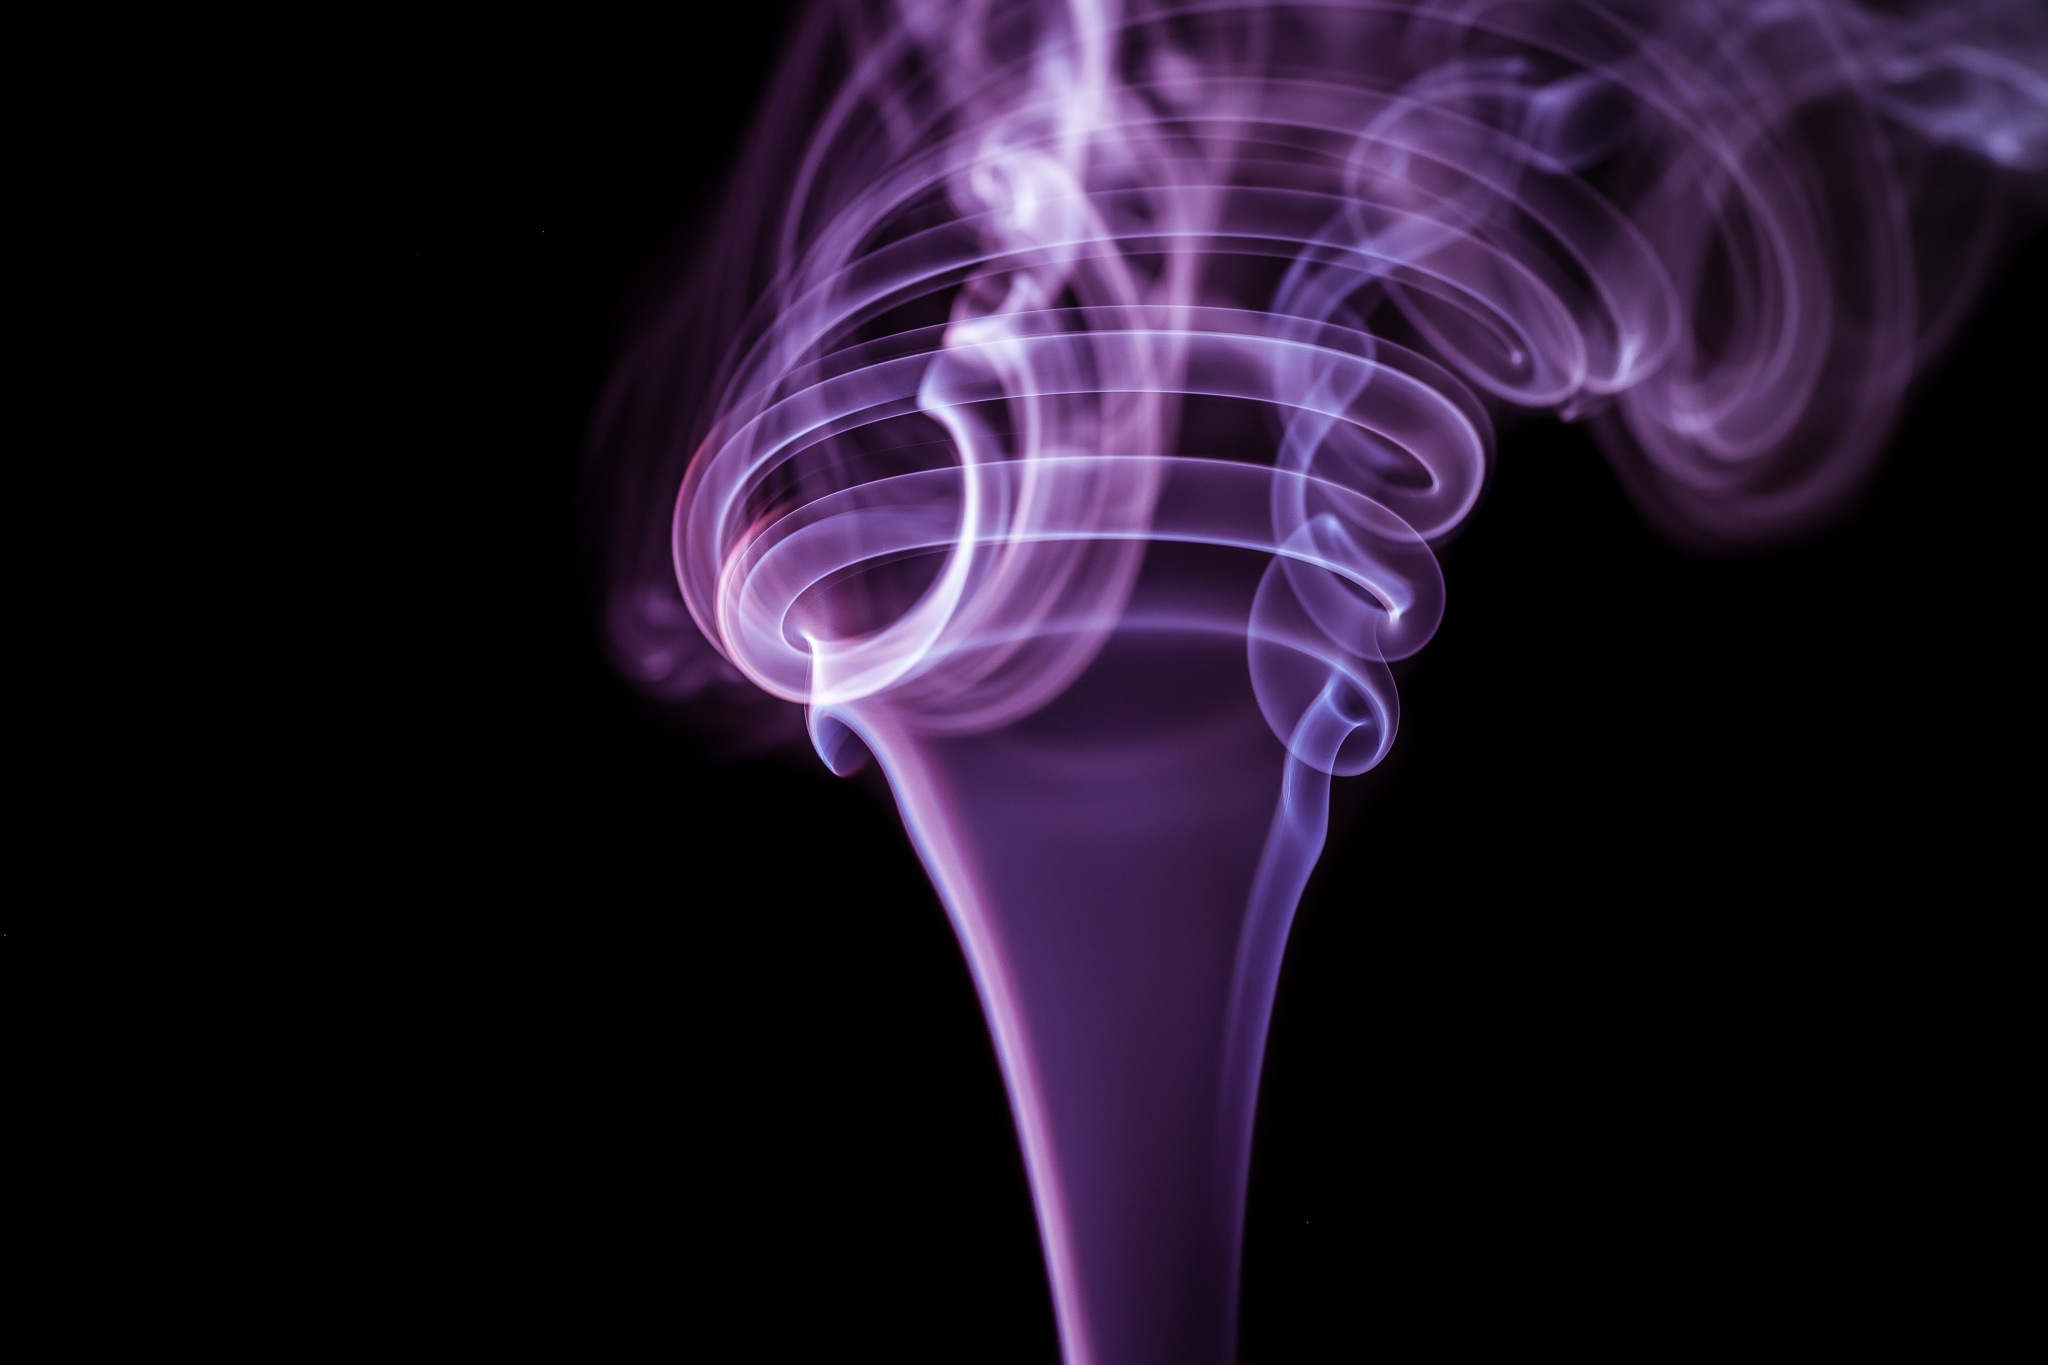 Purple smoke by terrance.jackson1